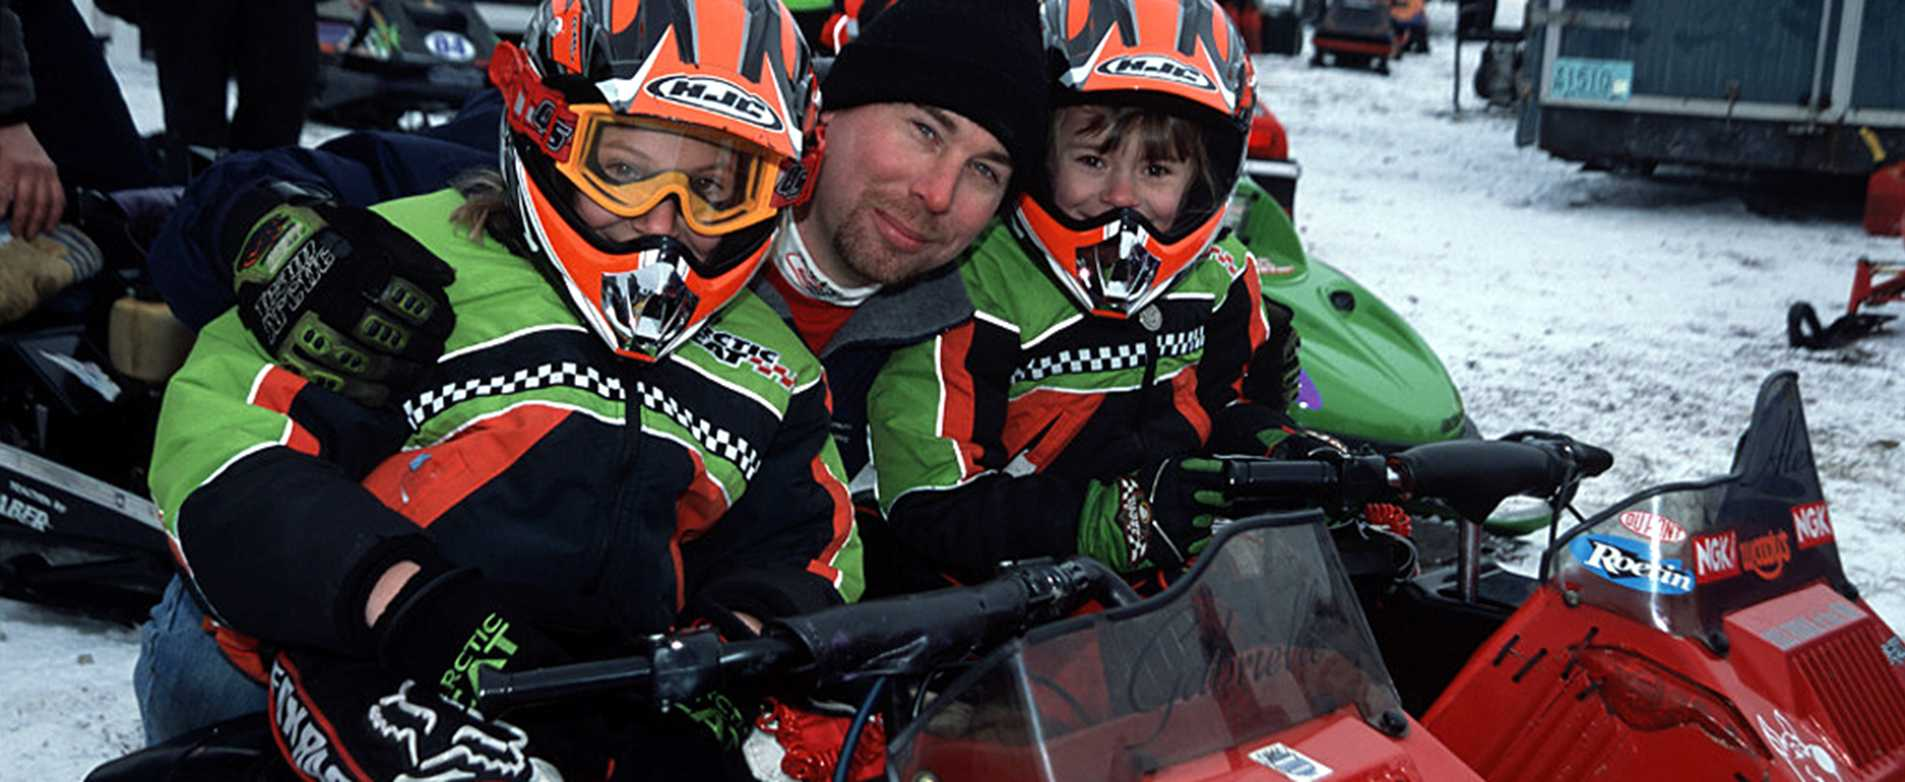 Kids on snowmobiles